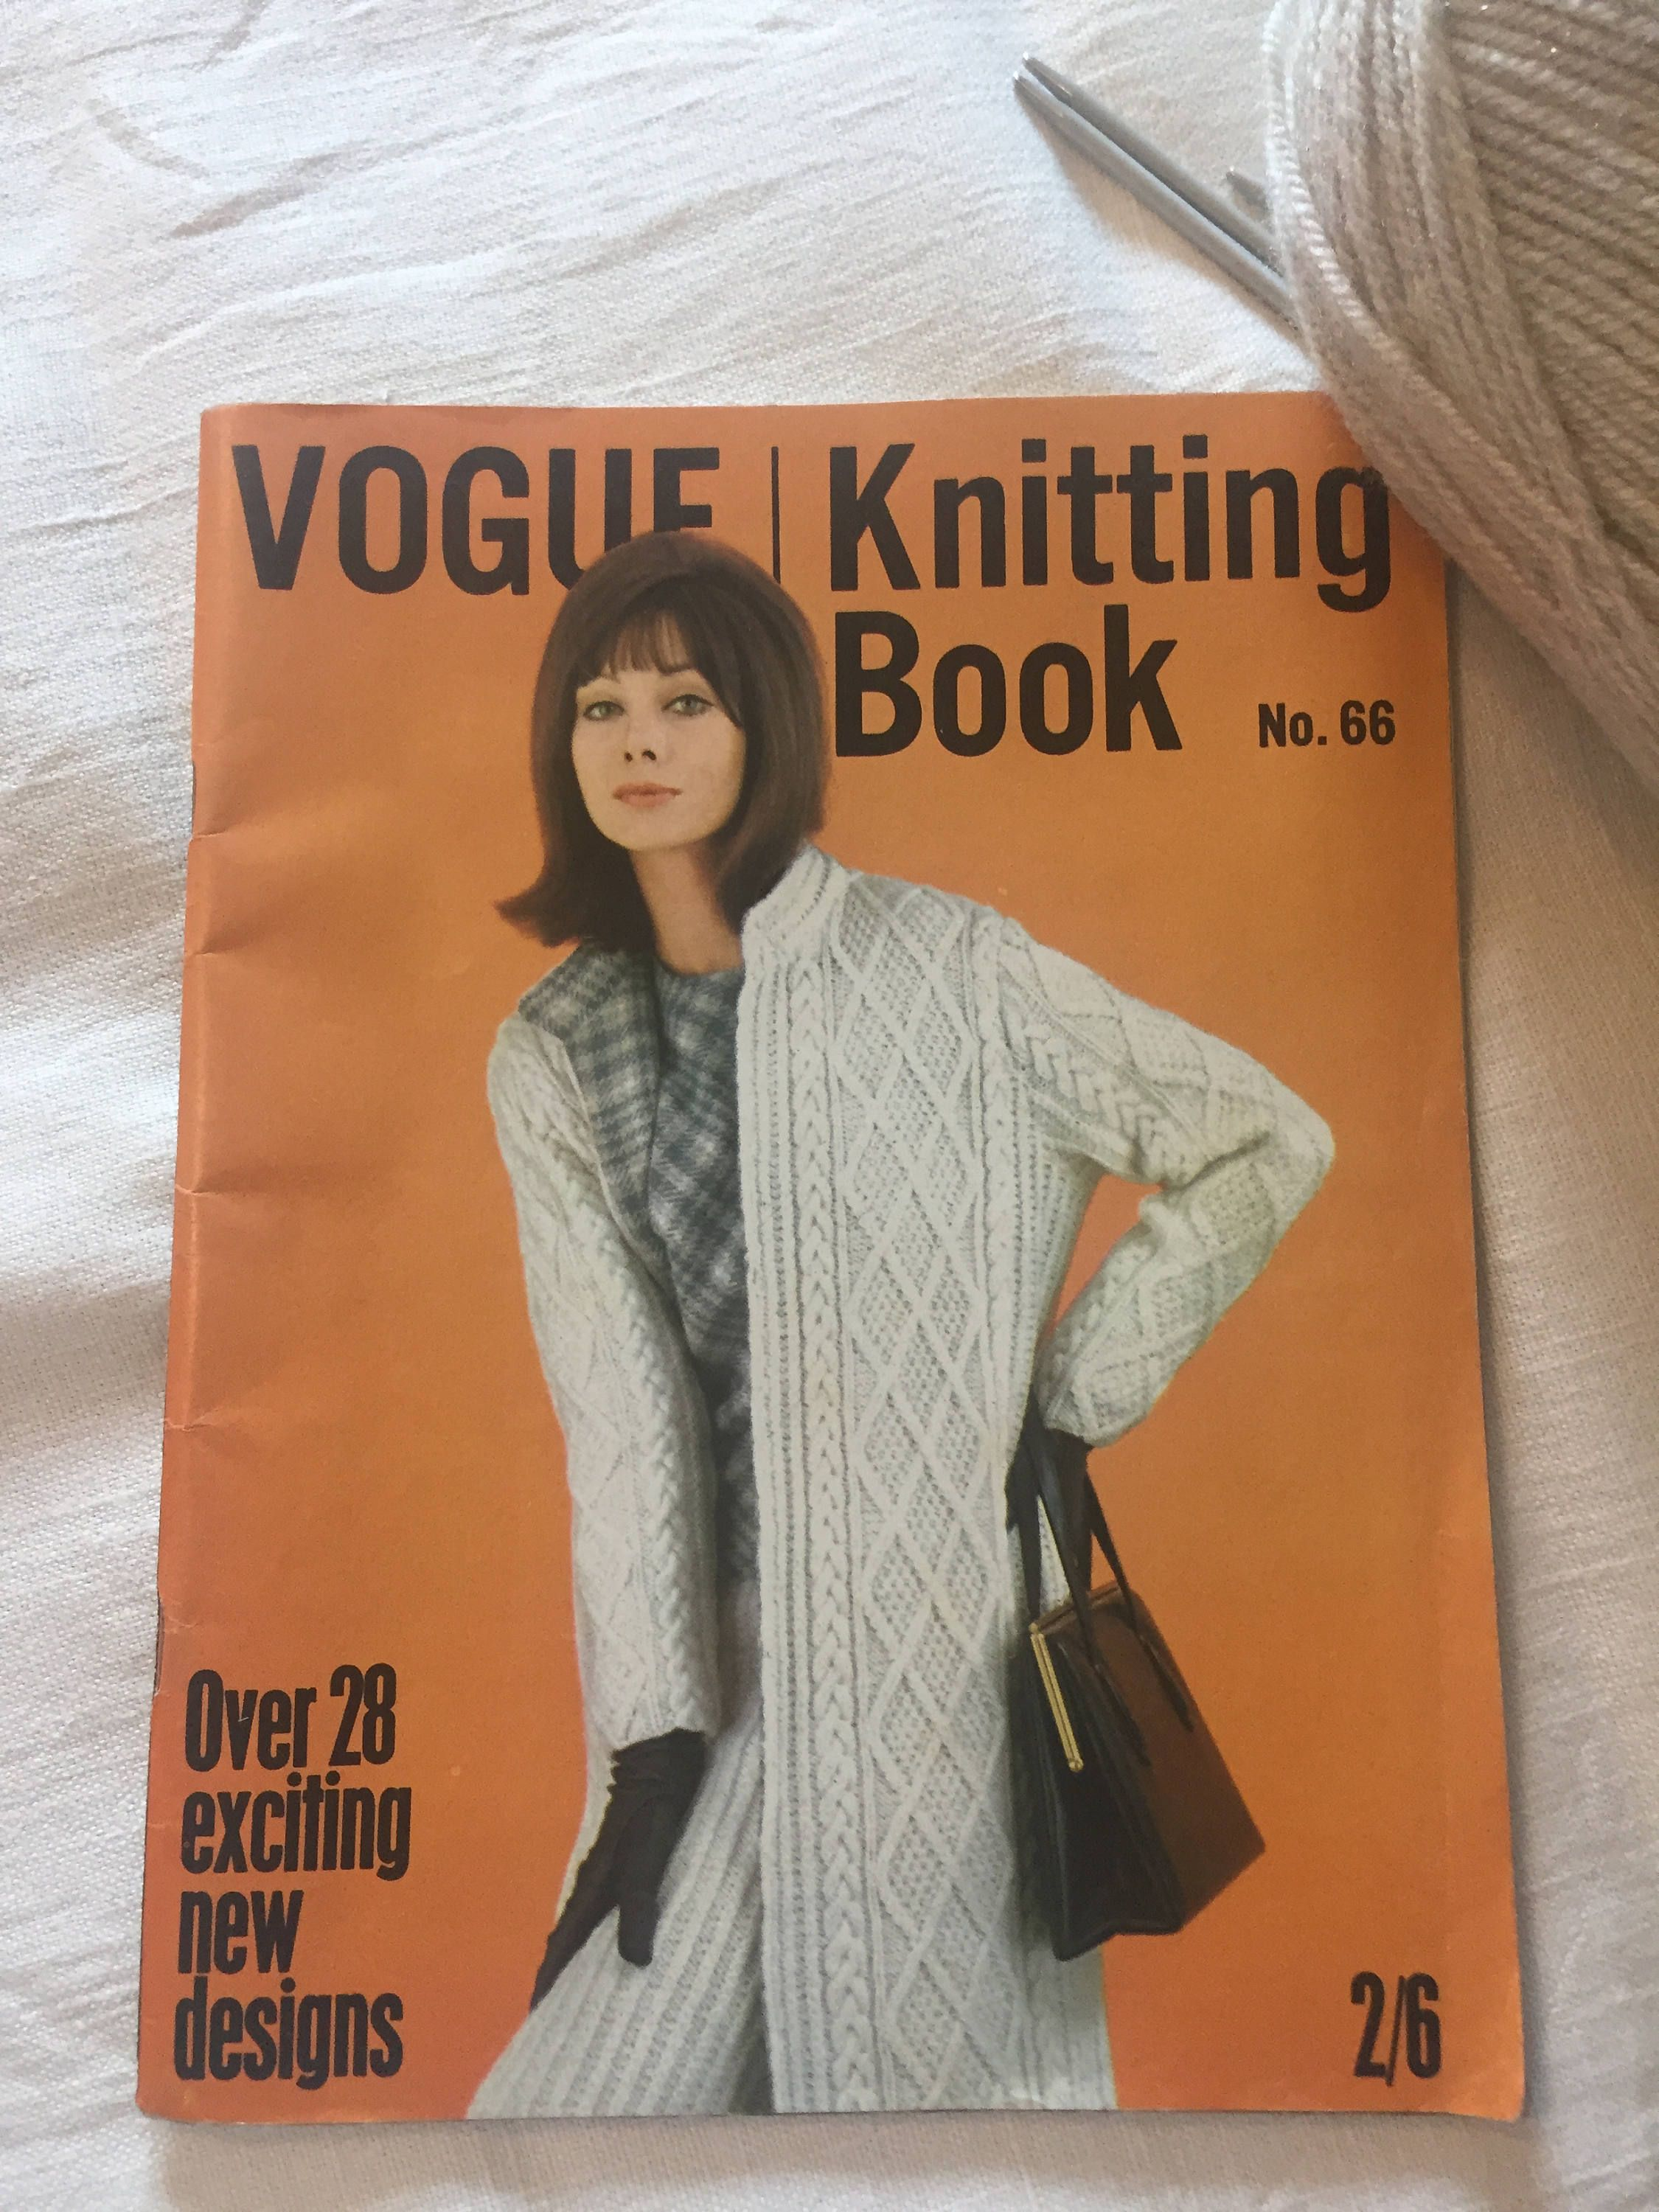 Vogue knitting book no 66 1960s vintage knitting pattern by vogue knitting book no 66 1960s vintage knitting pattern by stitchinvintage on etsy bankloansurffo Choice Image